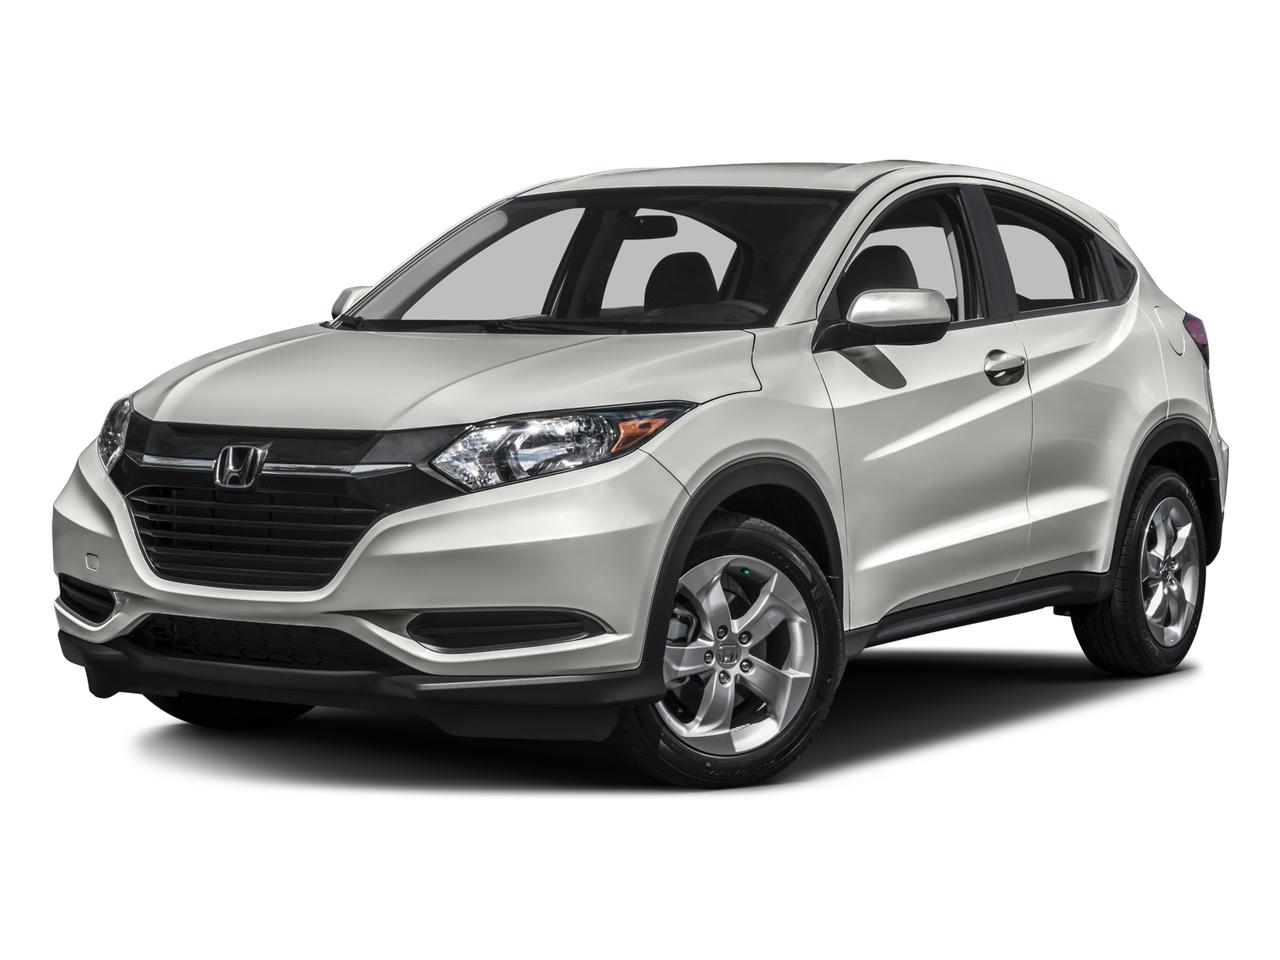 2016 Honda HR-V Vehicle Photo in Kingwood, TX 77339